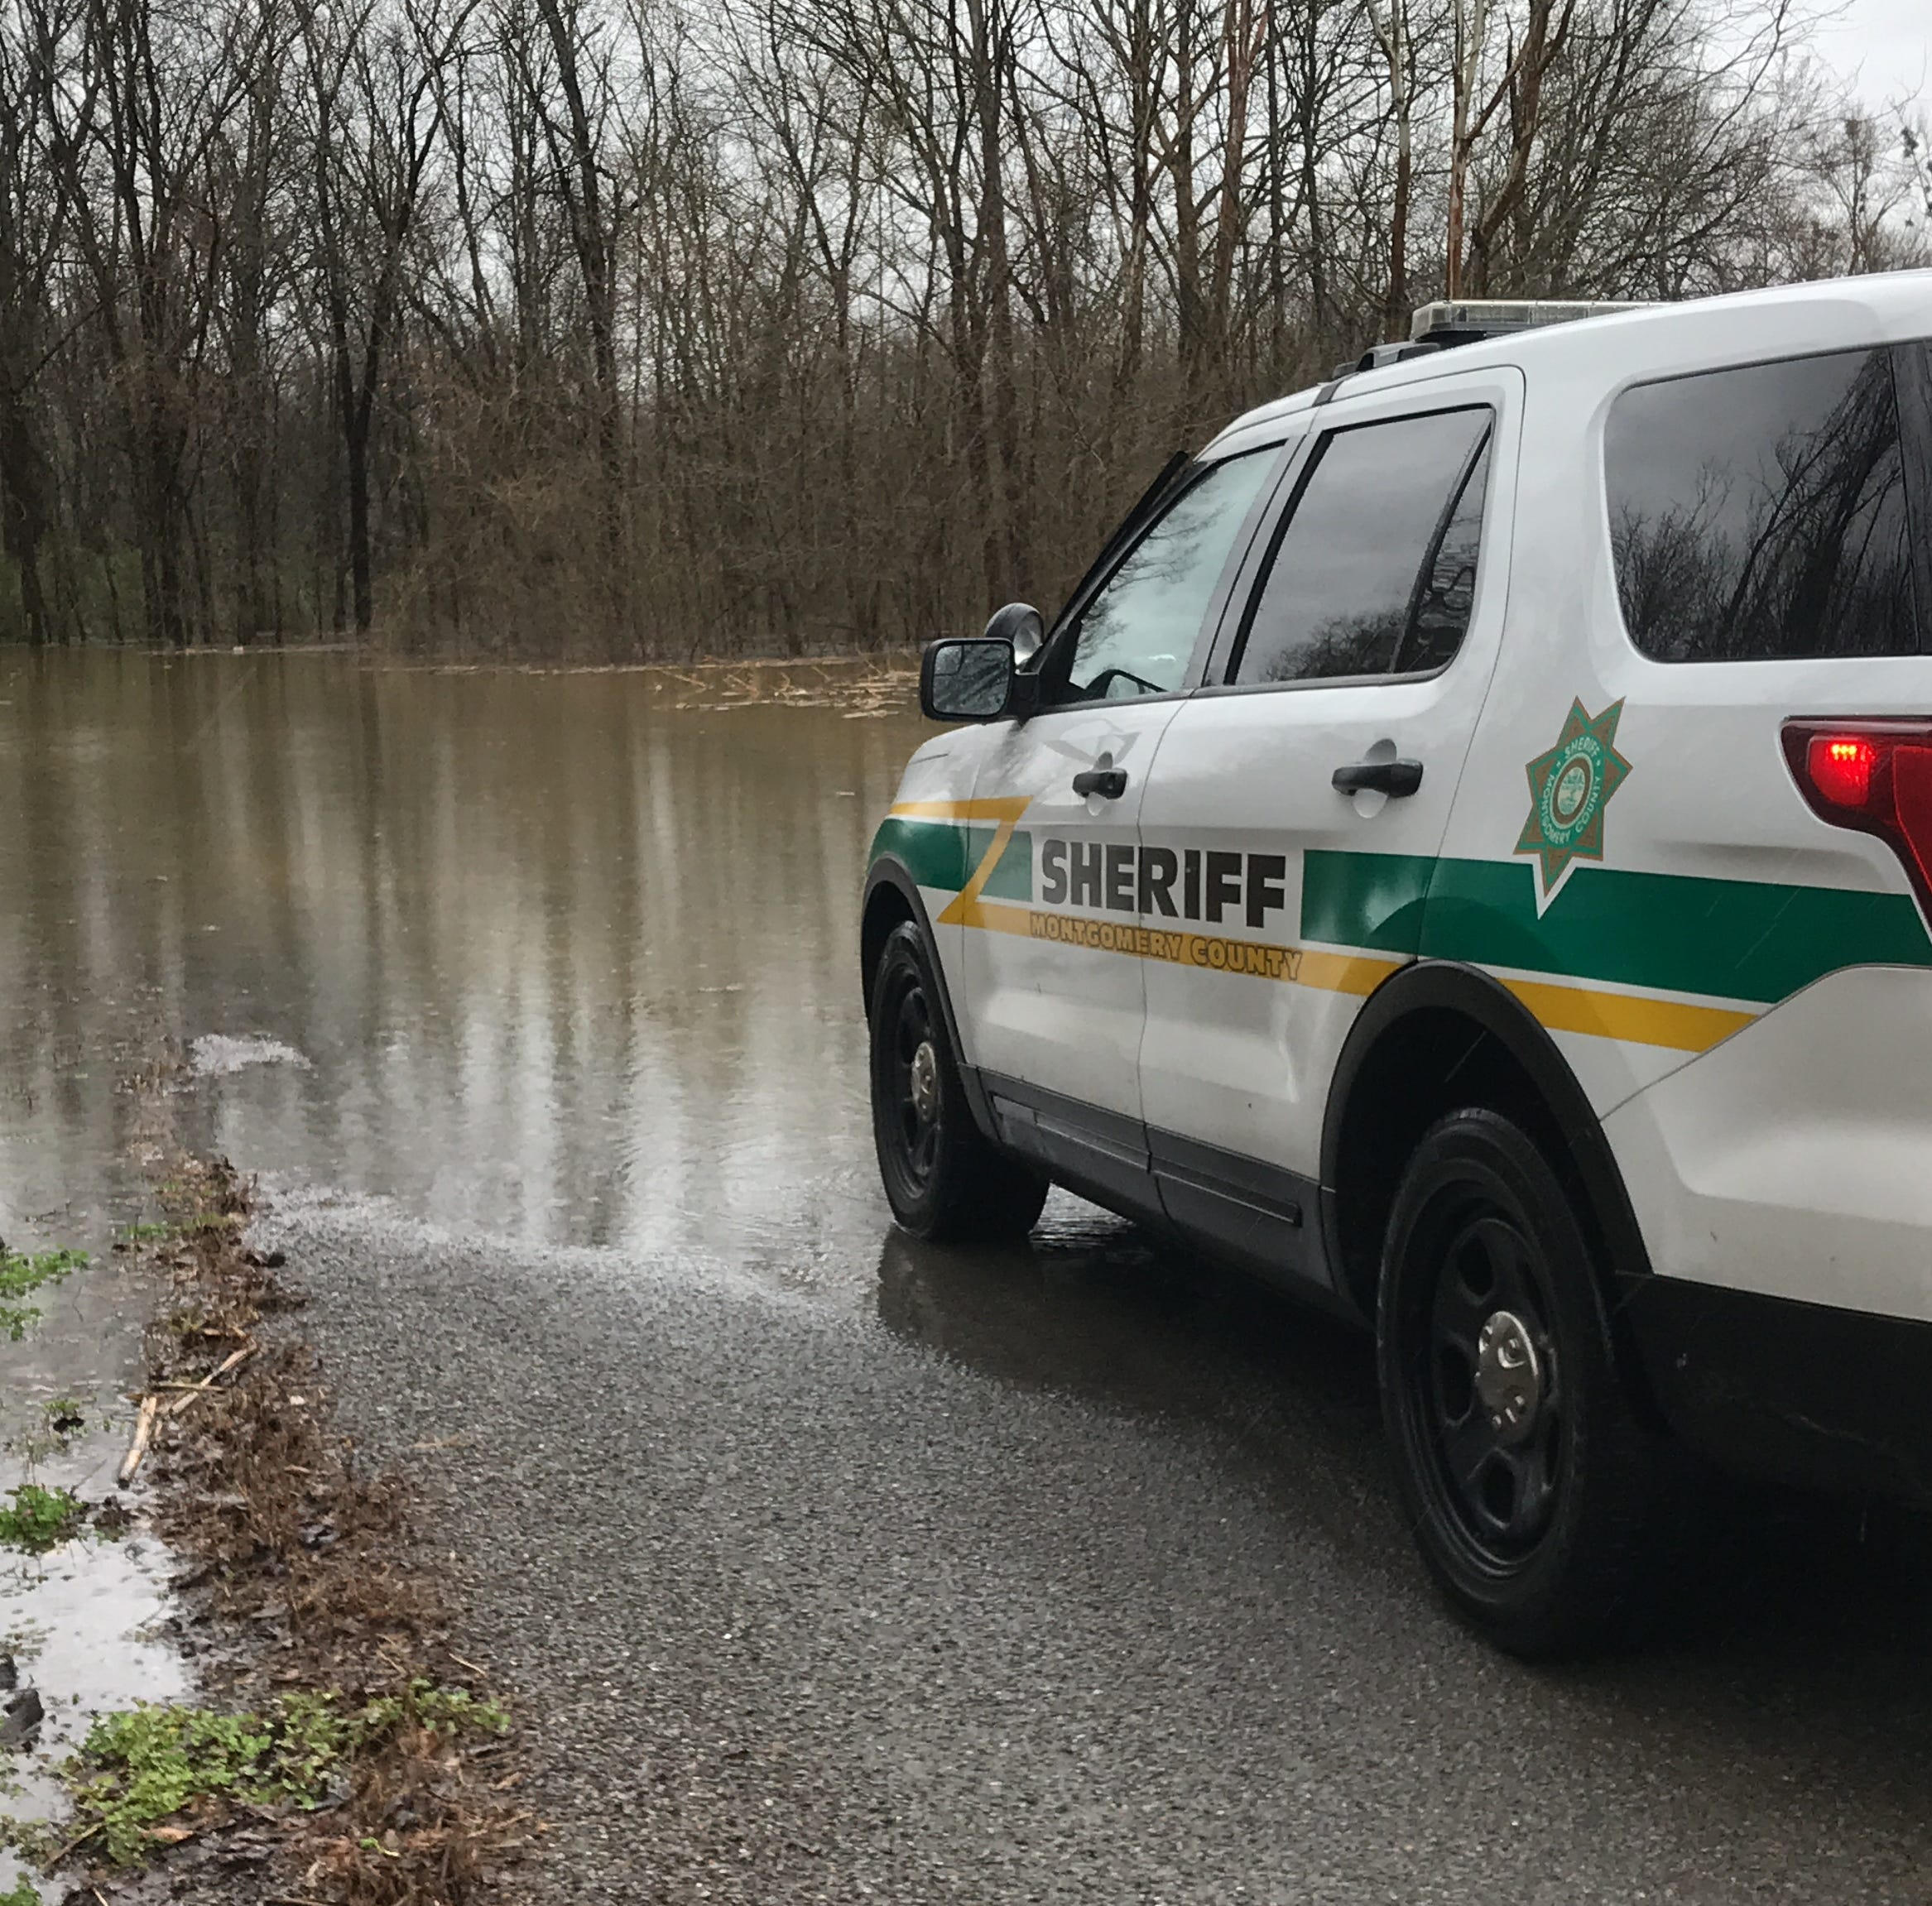 Clarksville flooding: Some roads in Montgomery County closed, heavier storms coming